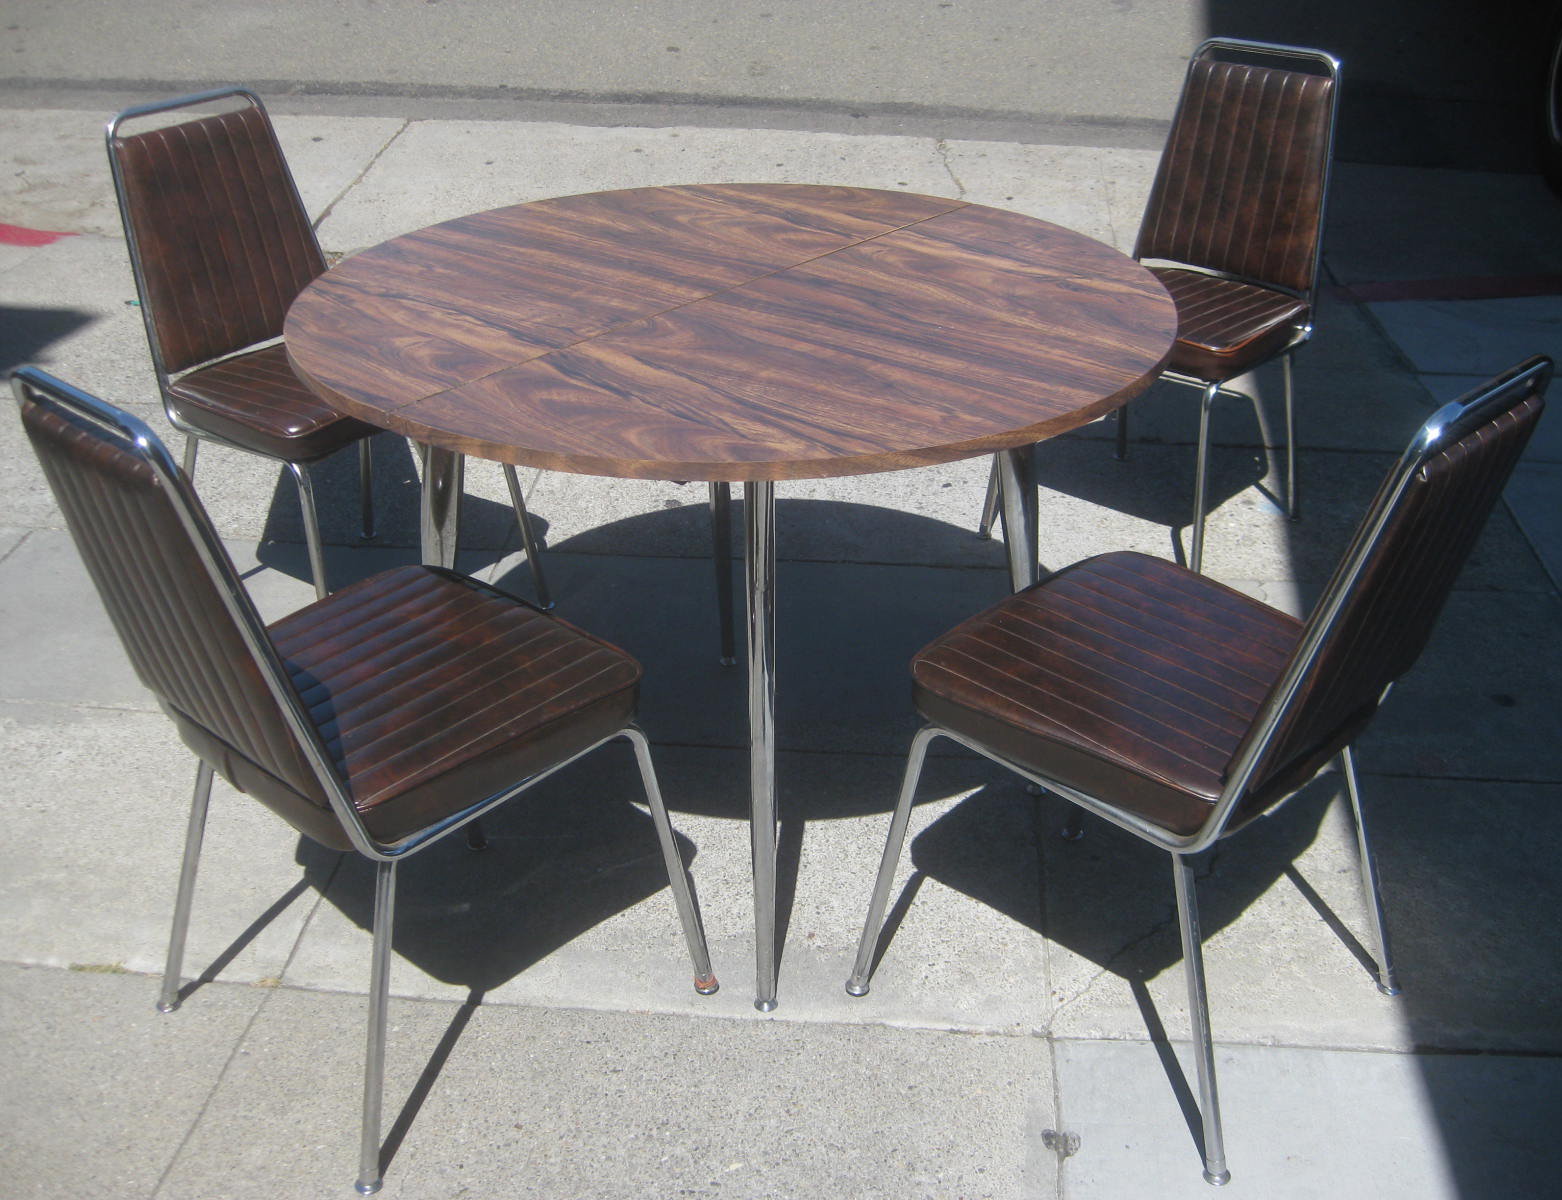 Retro Kitchen Chairs Uhuru Furniture And Collectibles Sold Retro Kitchen Table